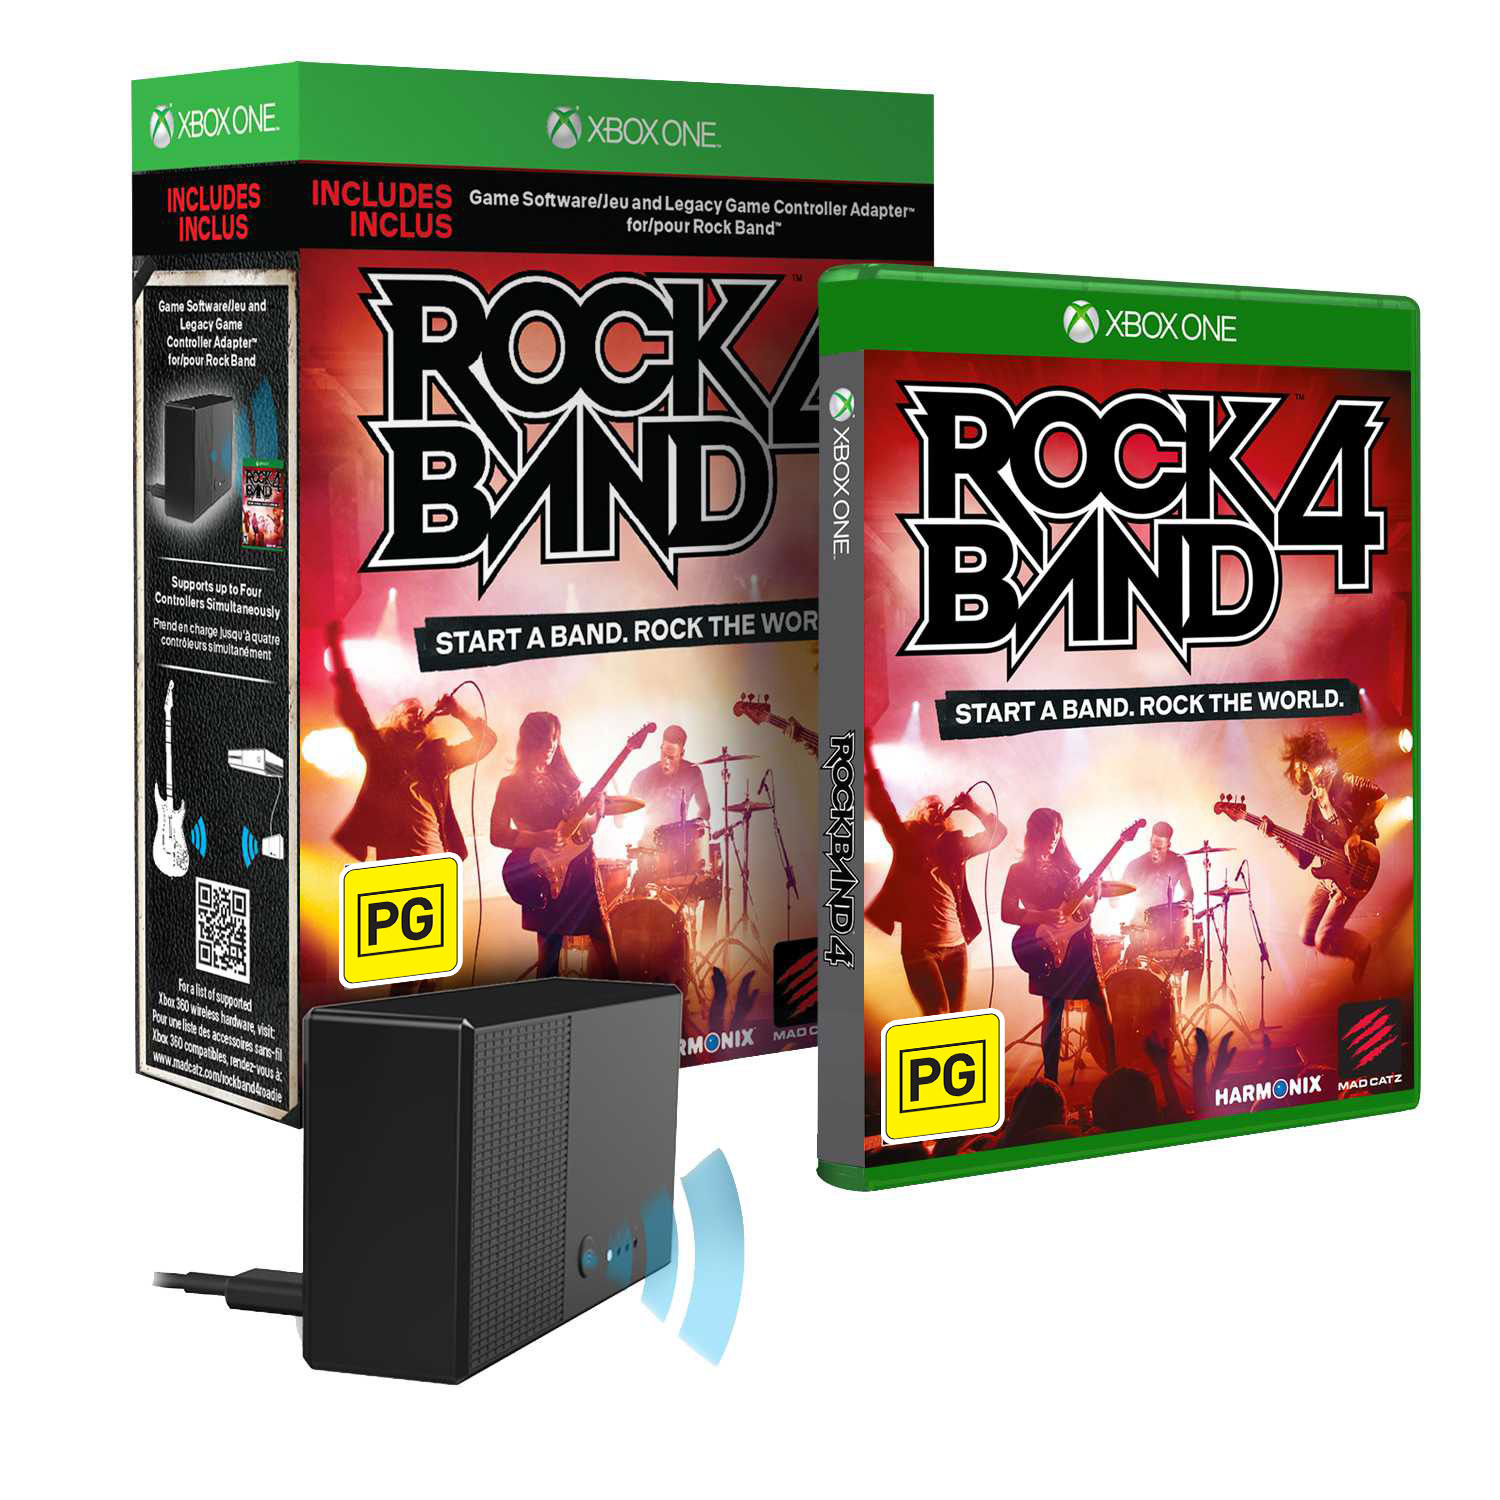 Rock Band 4 + Legacy Game Controller Adapter